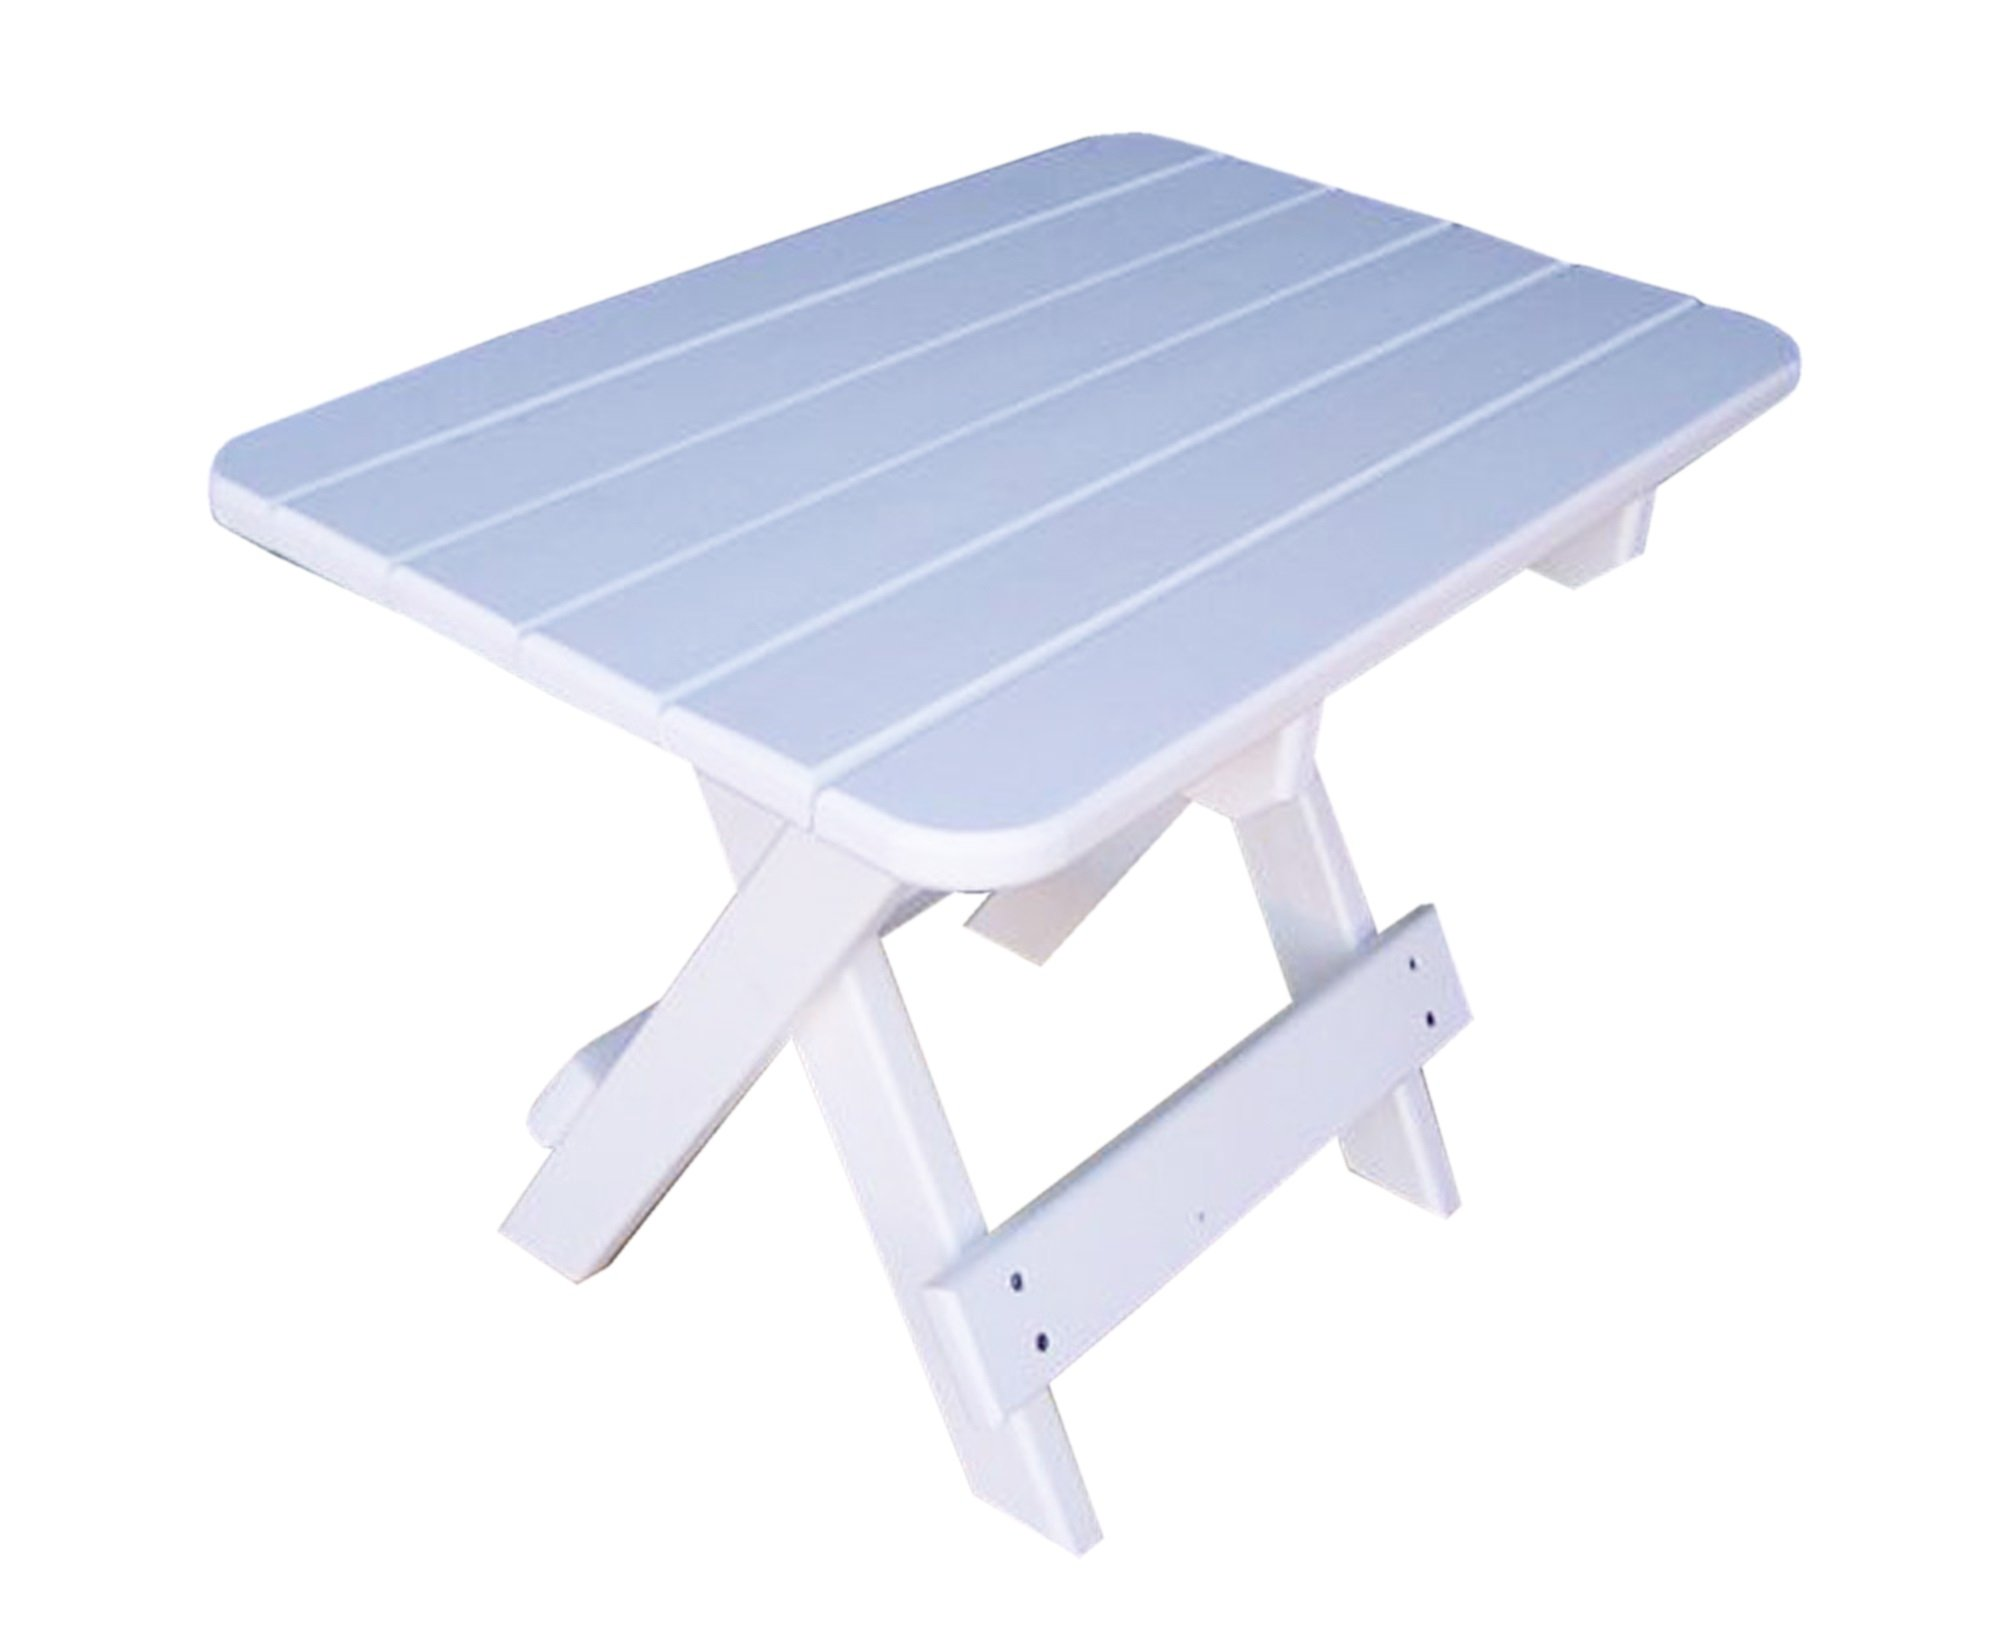 Phat Tommy Recycled Poly Resin Folding Side Table – Durable & Eco-Friendly Patio Furniture matches Adirondack, White